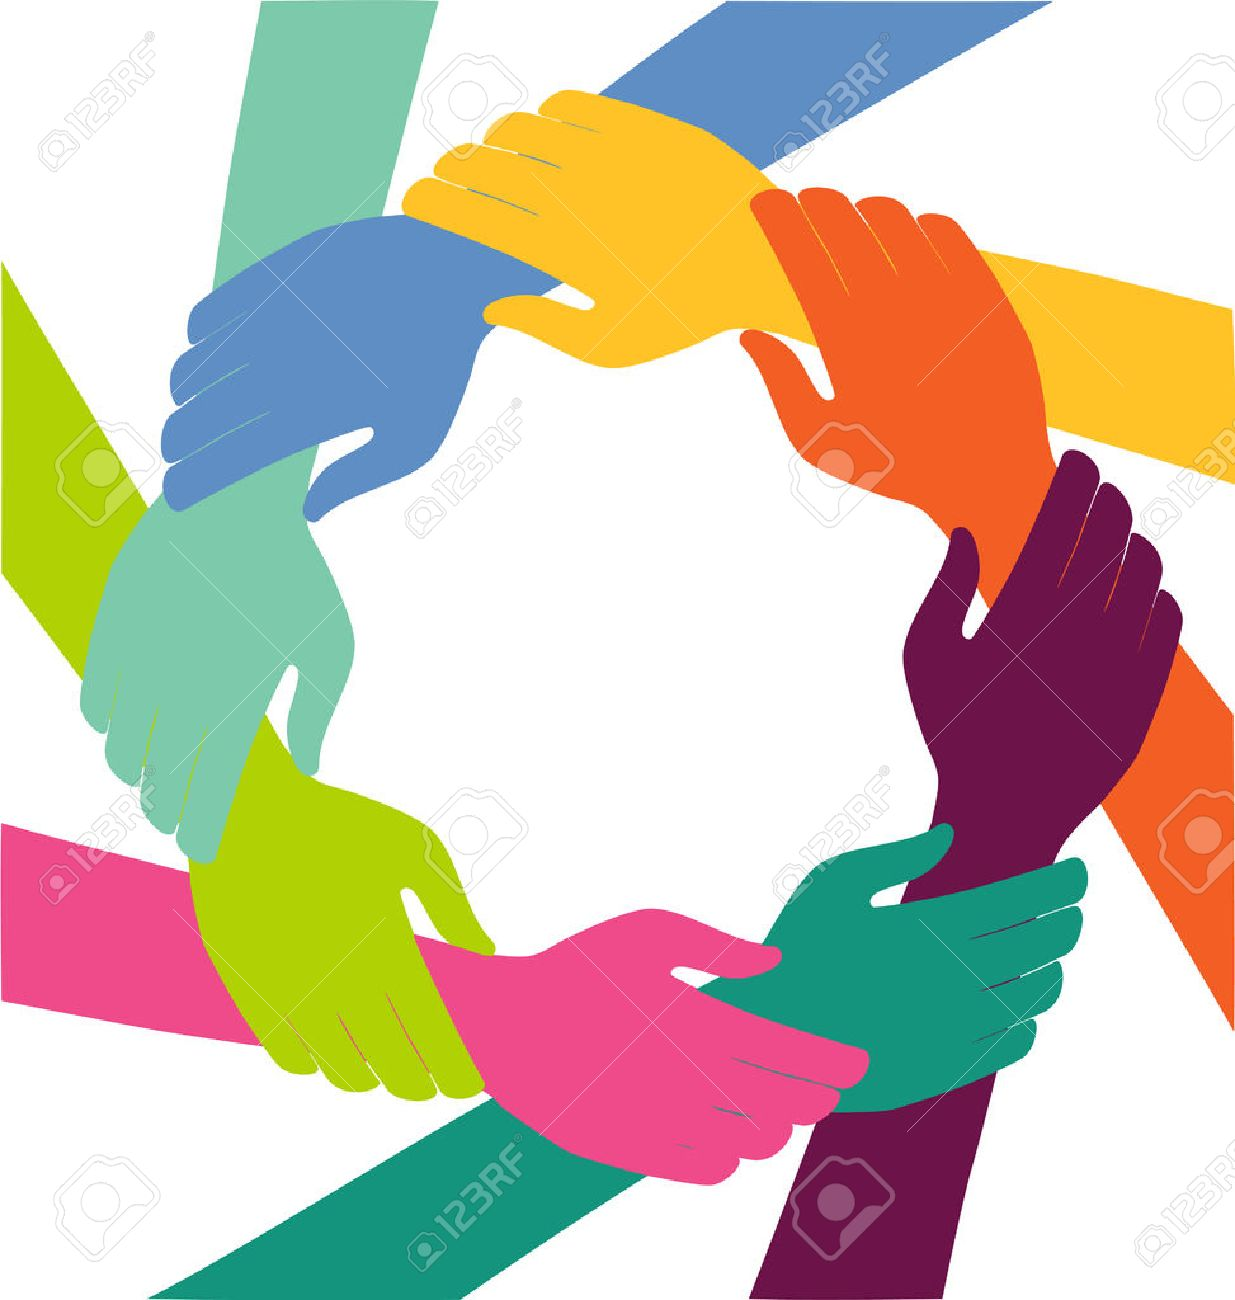 Creative Colorful Ring of Hands Teamwork Concept - 55470295